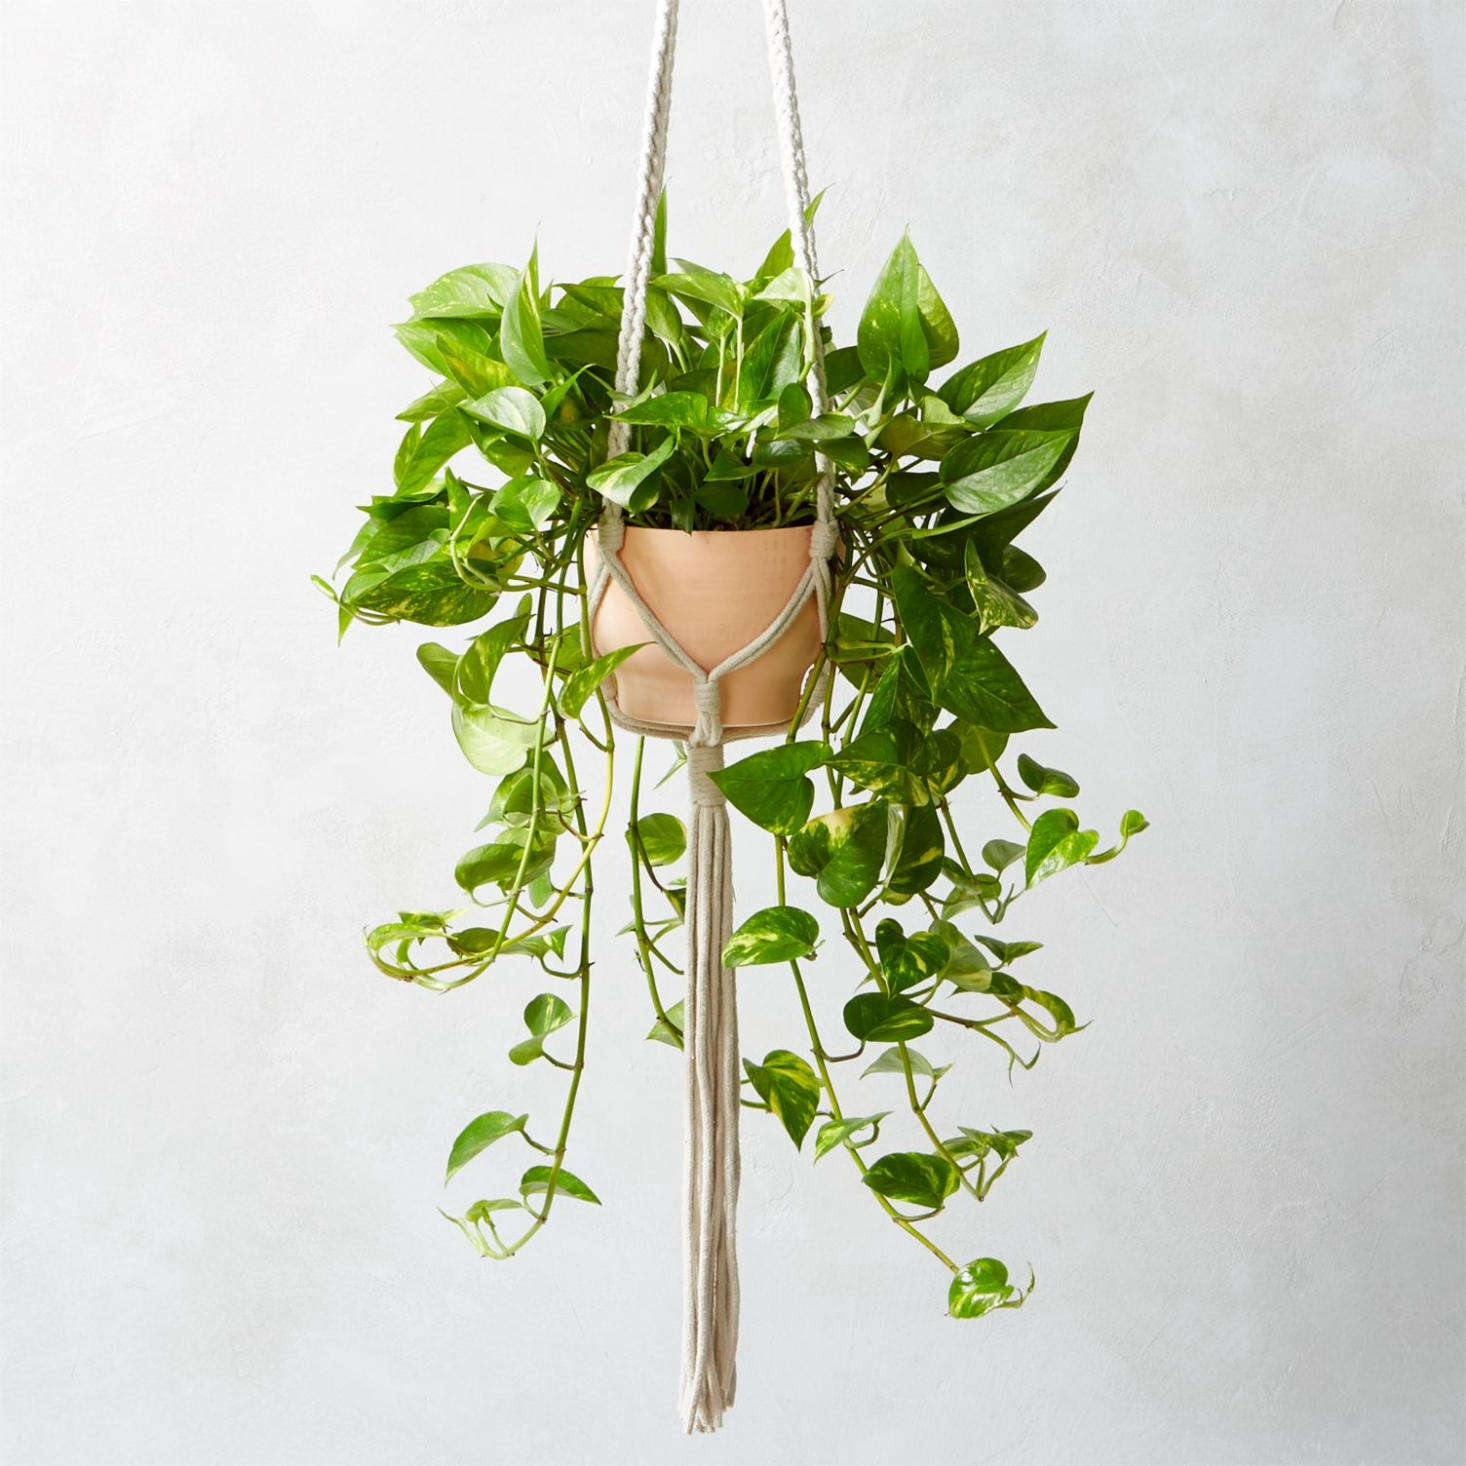 The hand-braided Macrame Plant Holder, made of cotton/nylon cord, is $.95 from CB